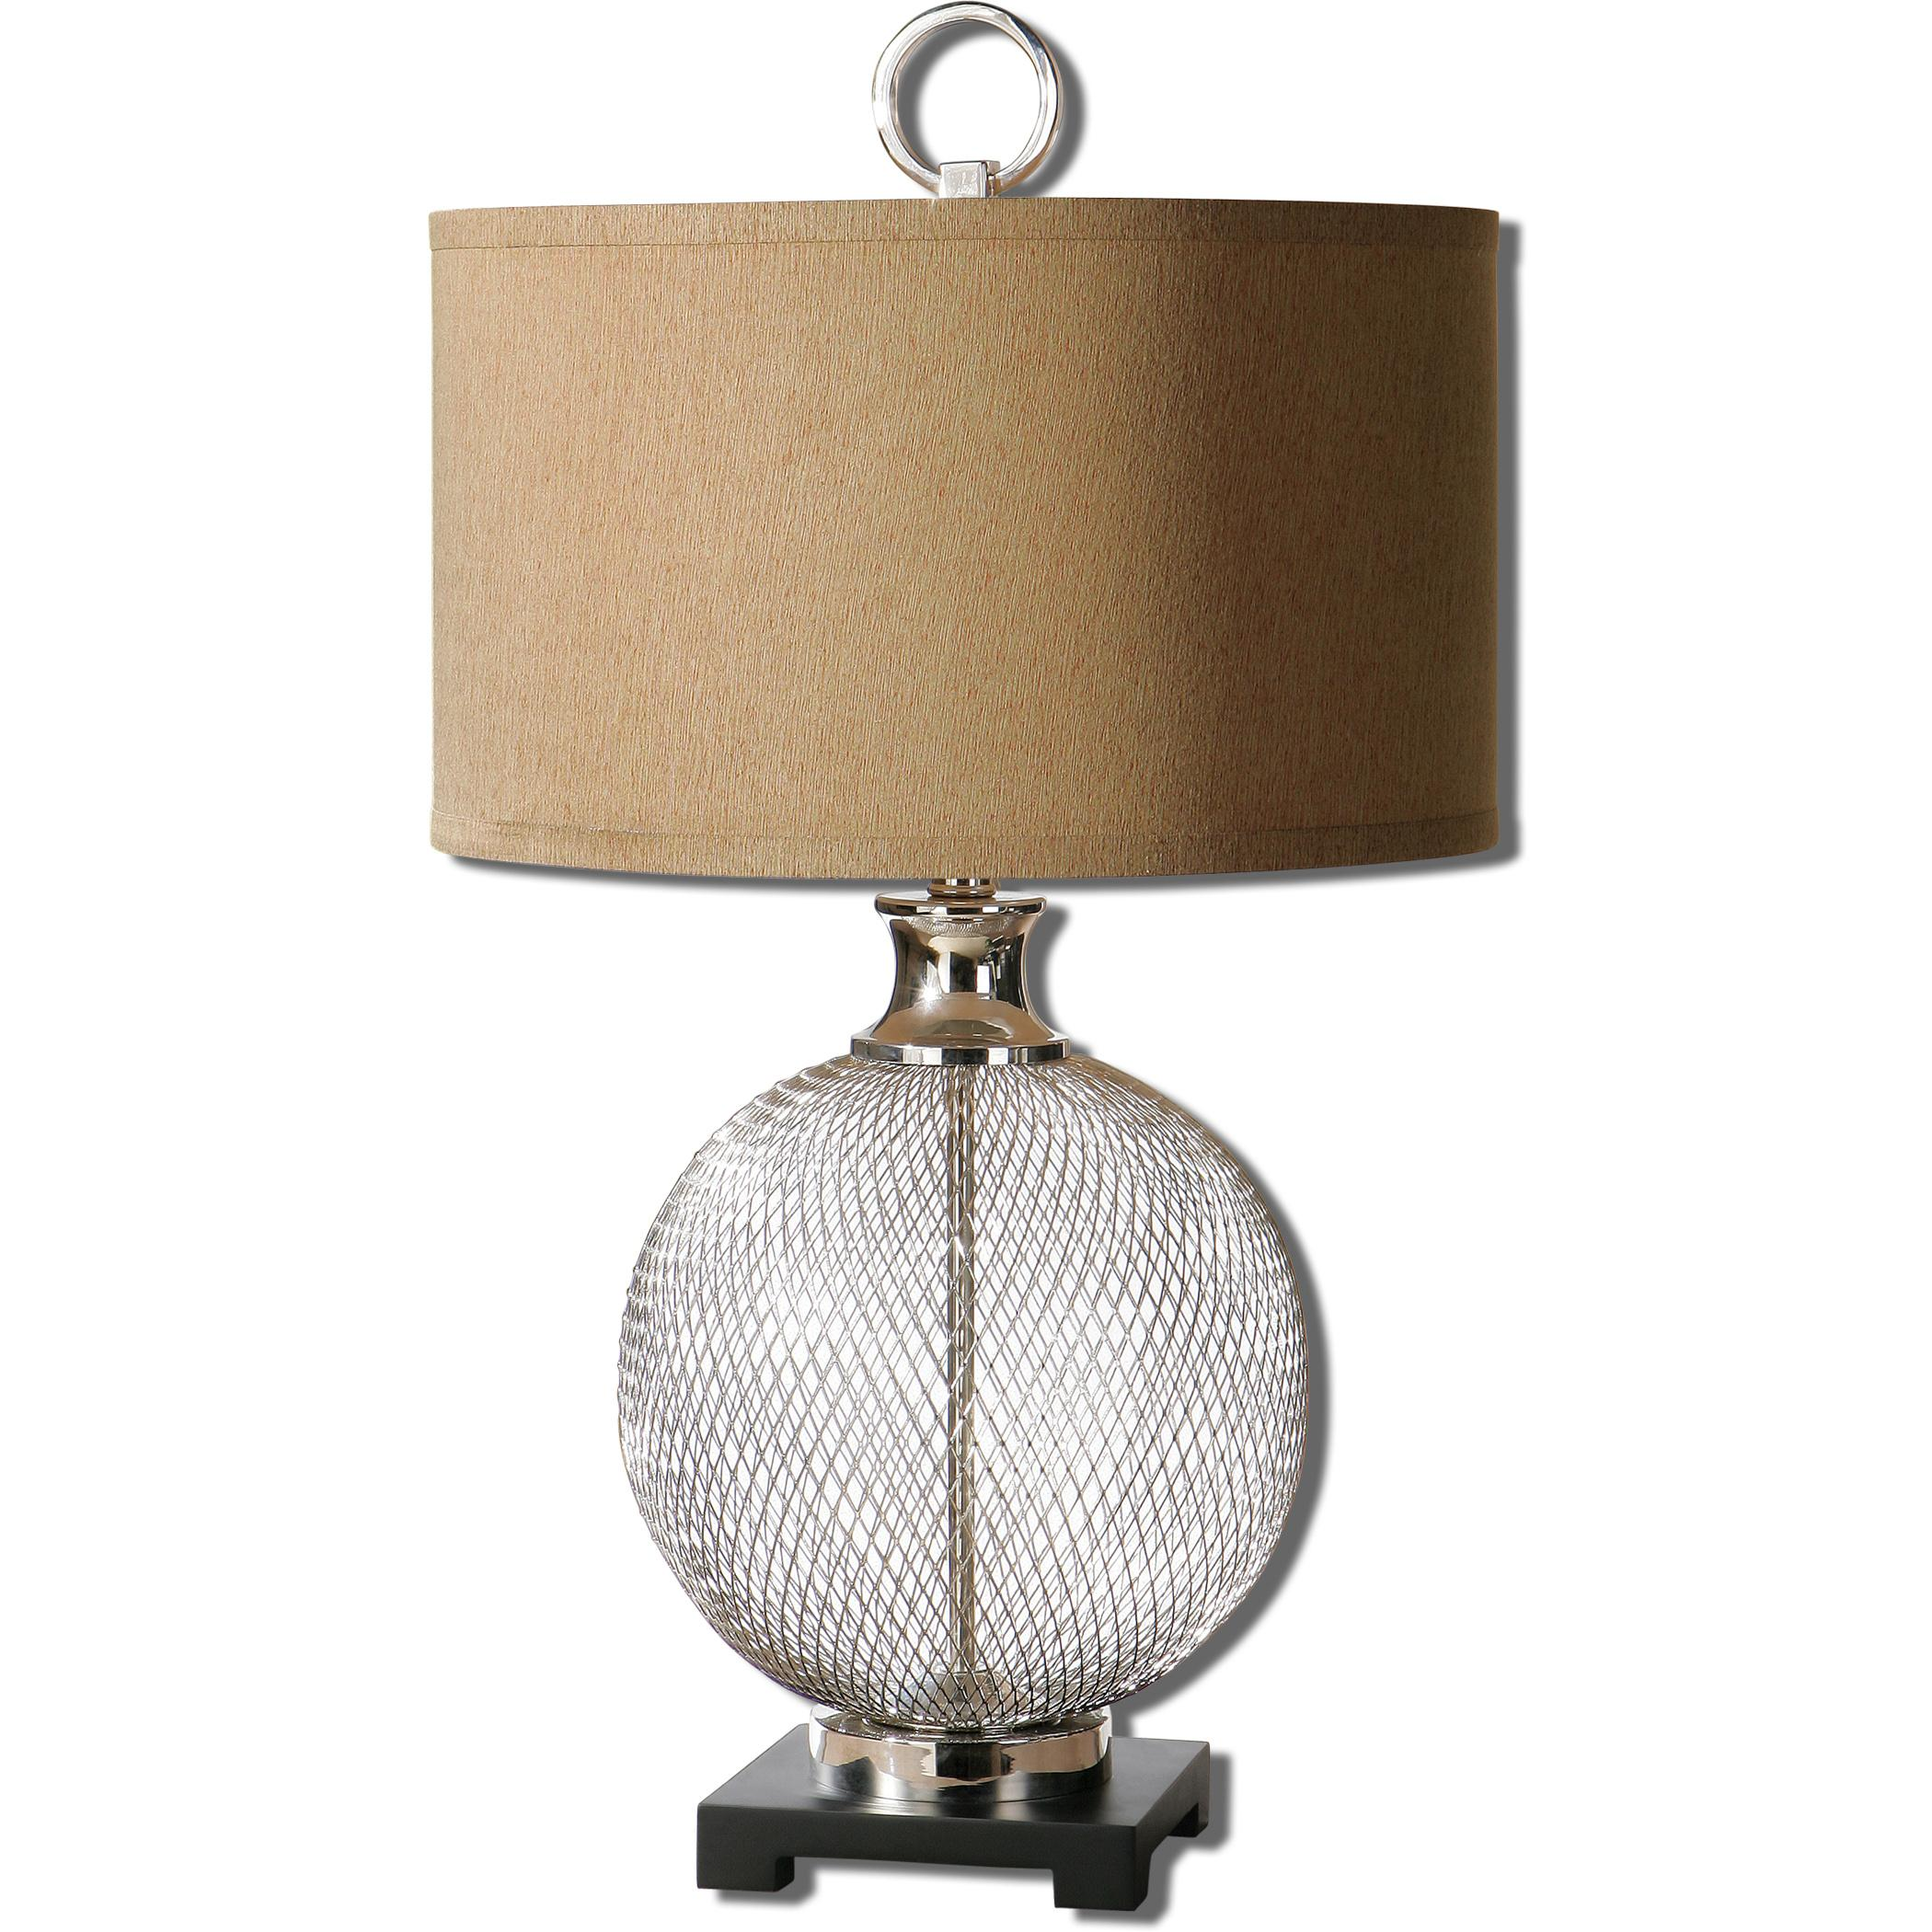 Accent Lamps Catalan Metal Accent Lamp by Uttermost at Upper Room Home Furnishings